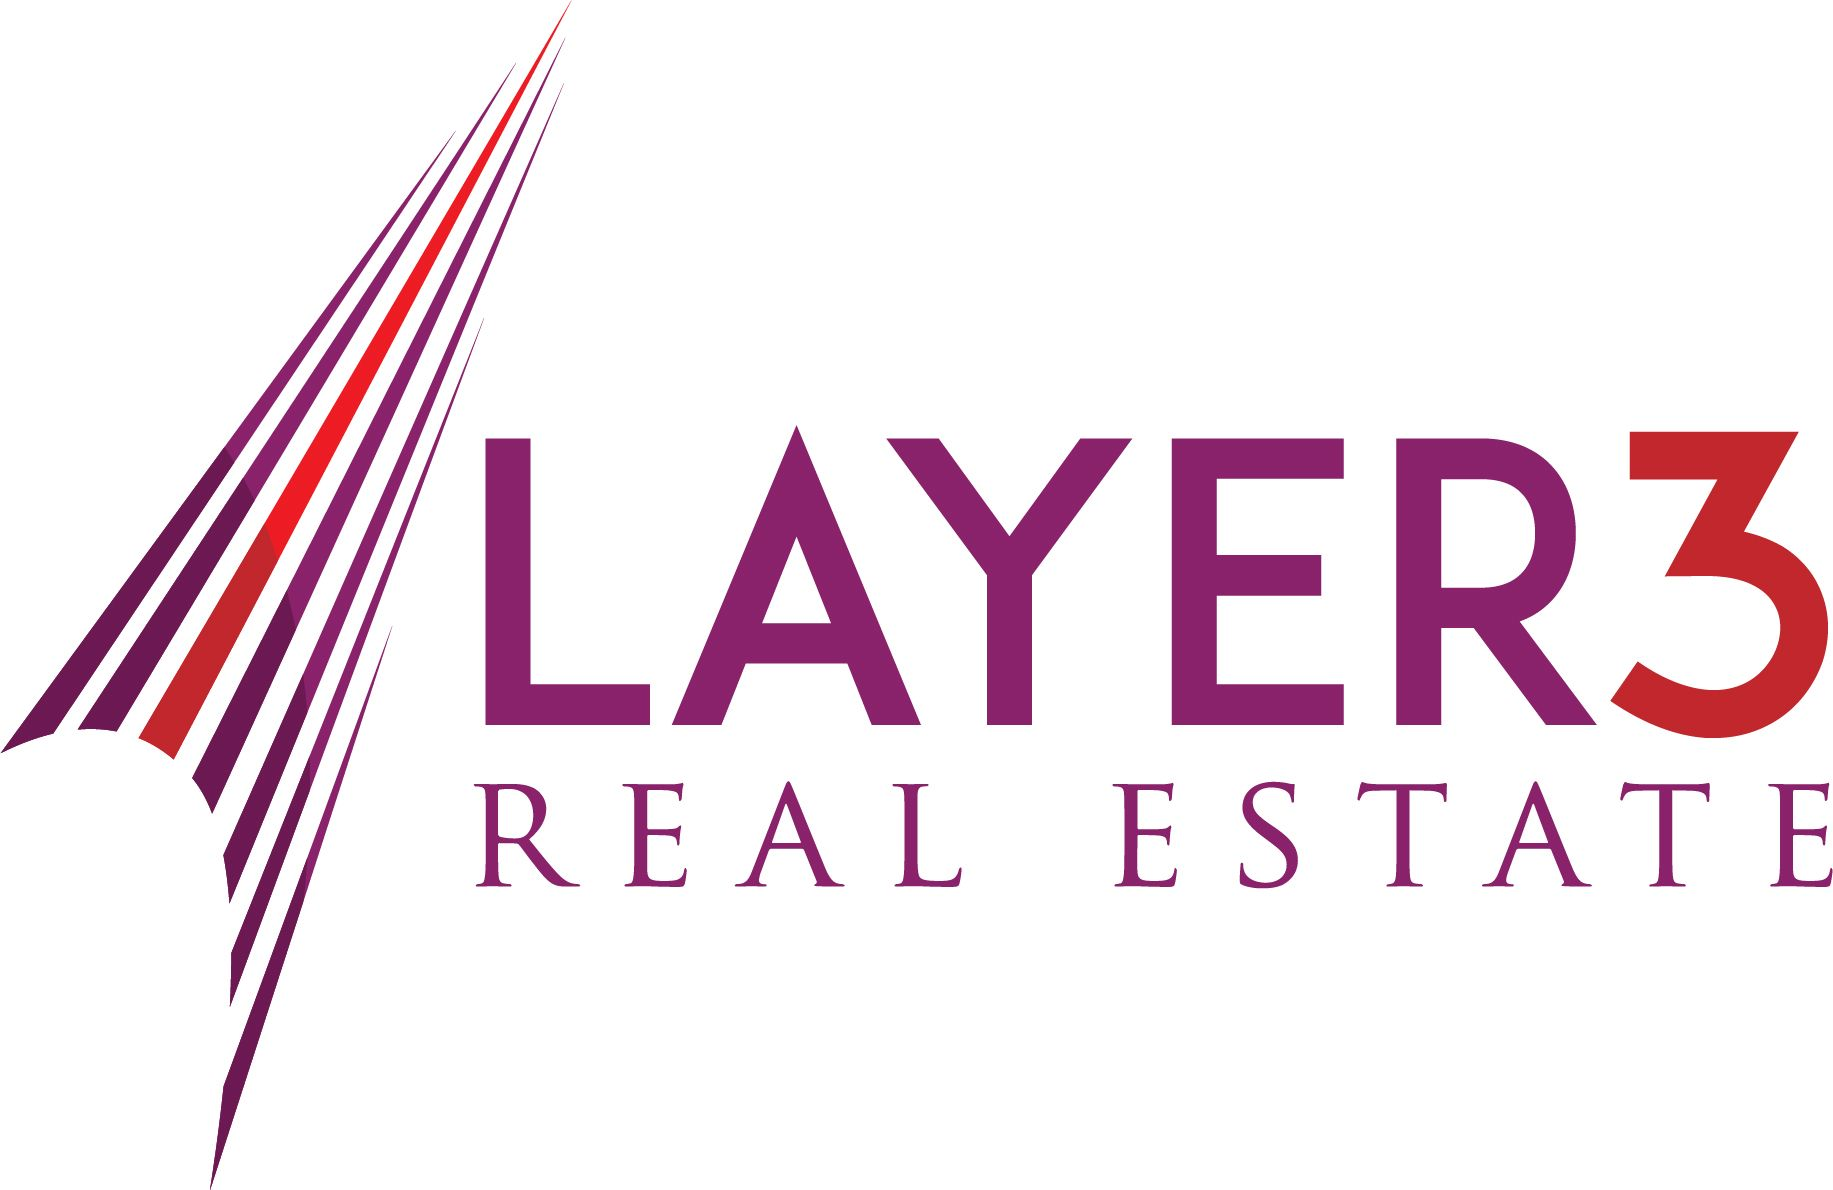 Layer3 Real Estate